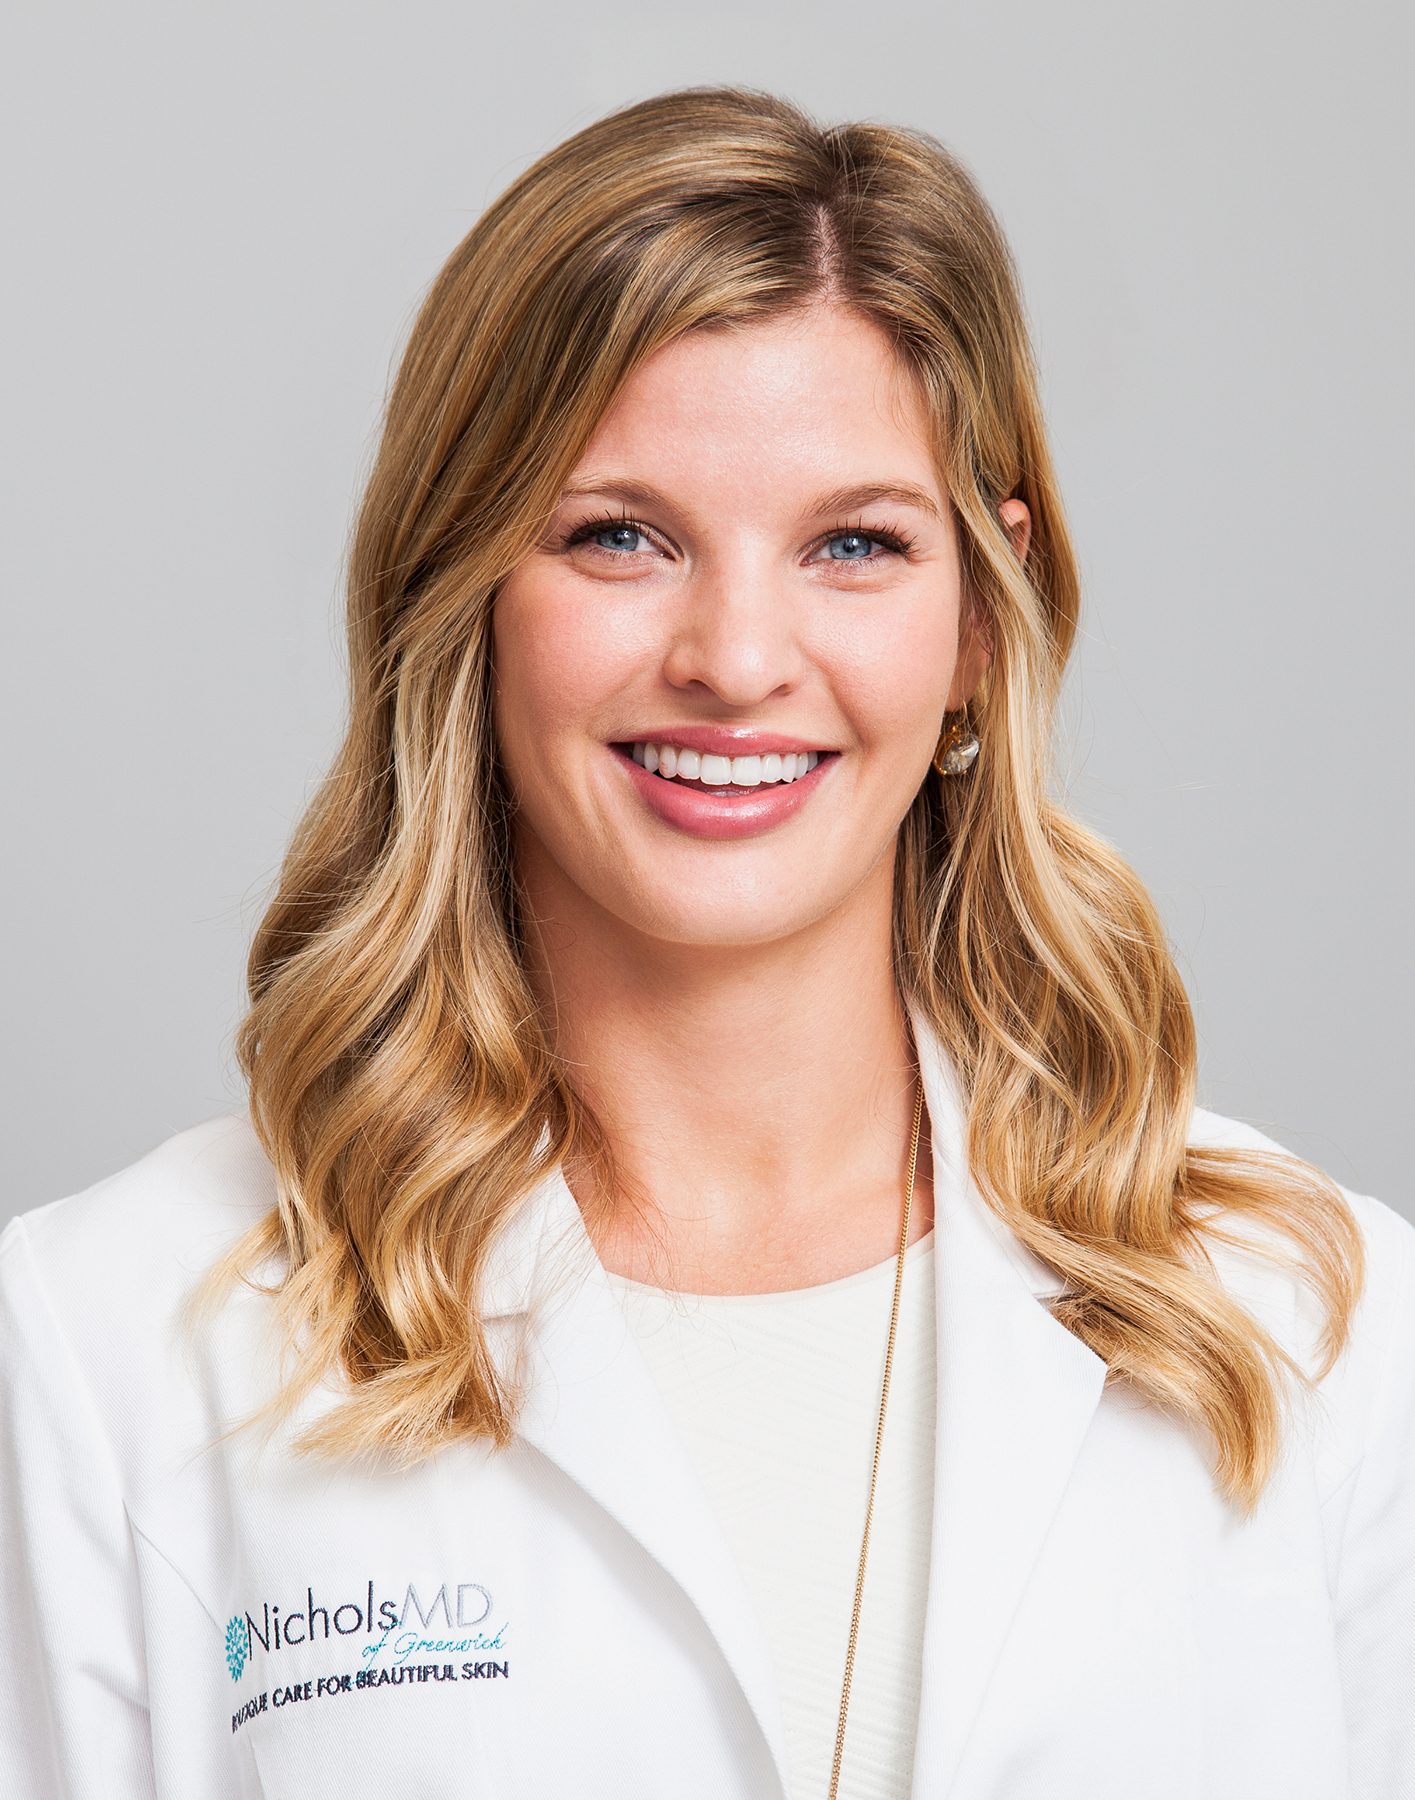 Dr. Kim-Nichols-Professional-Photography-Doctor-Profile-Portrait-Greewhich-Ct-02-Beckerman-Katie-French.jpg